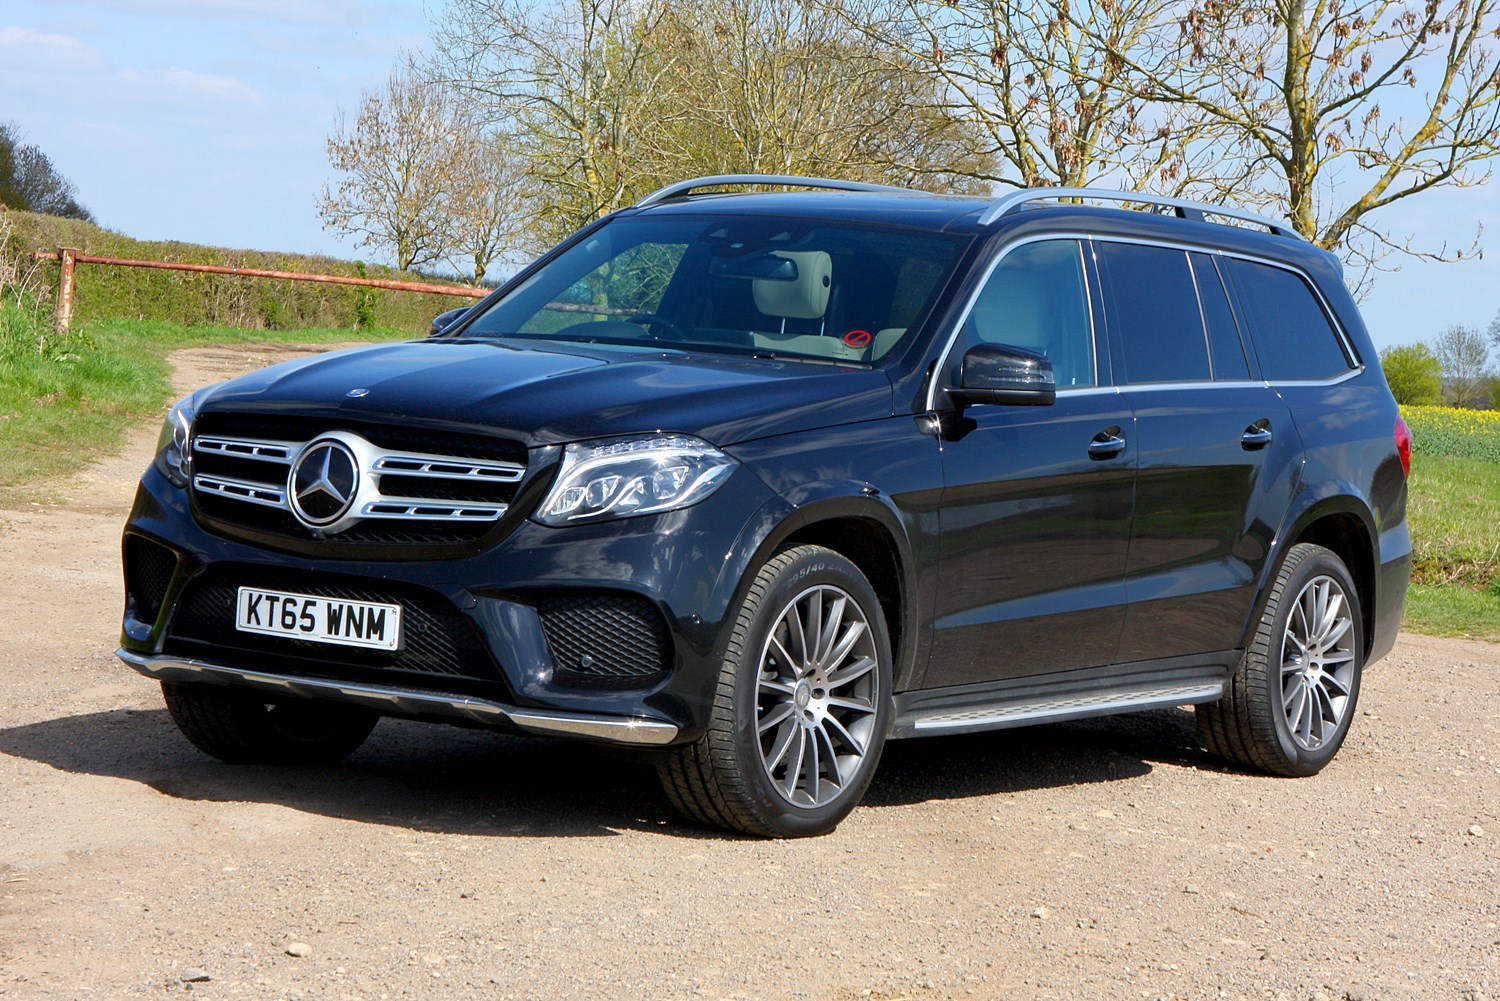 Mercedes benz gls class suv review 2016 parkers for How much is a mercedes benz suv